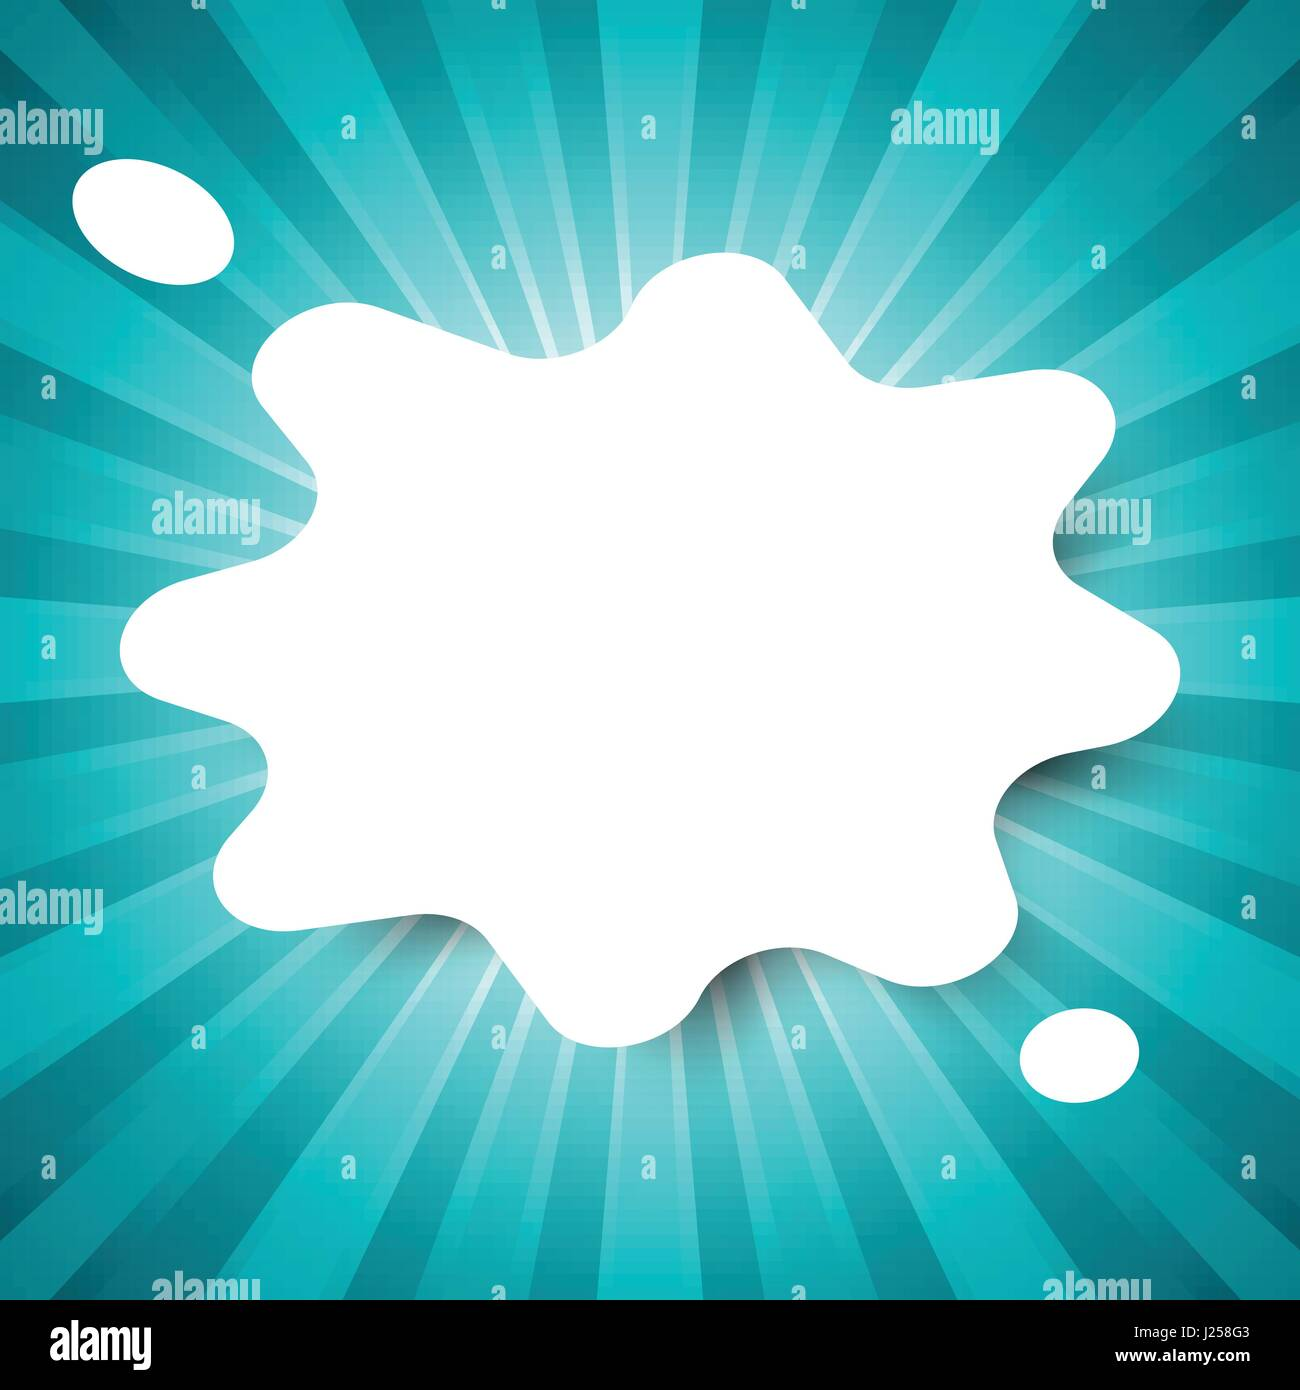 white water drop template on green abstract background with start